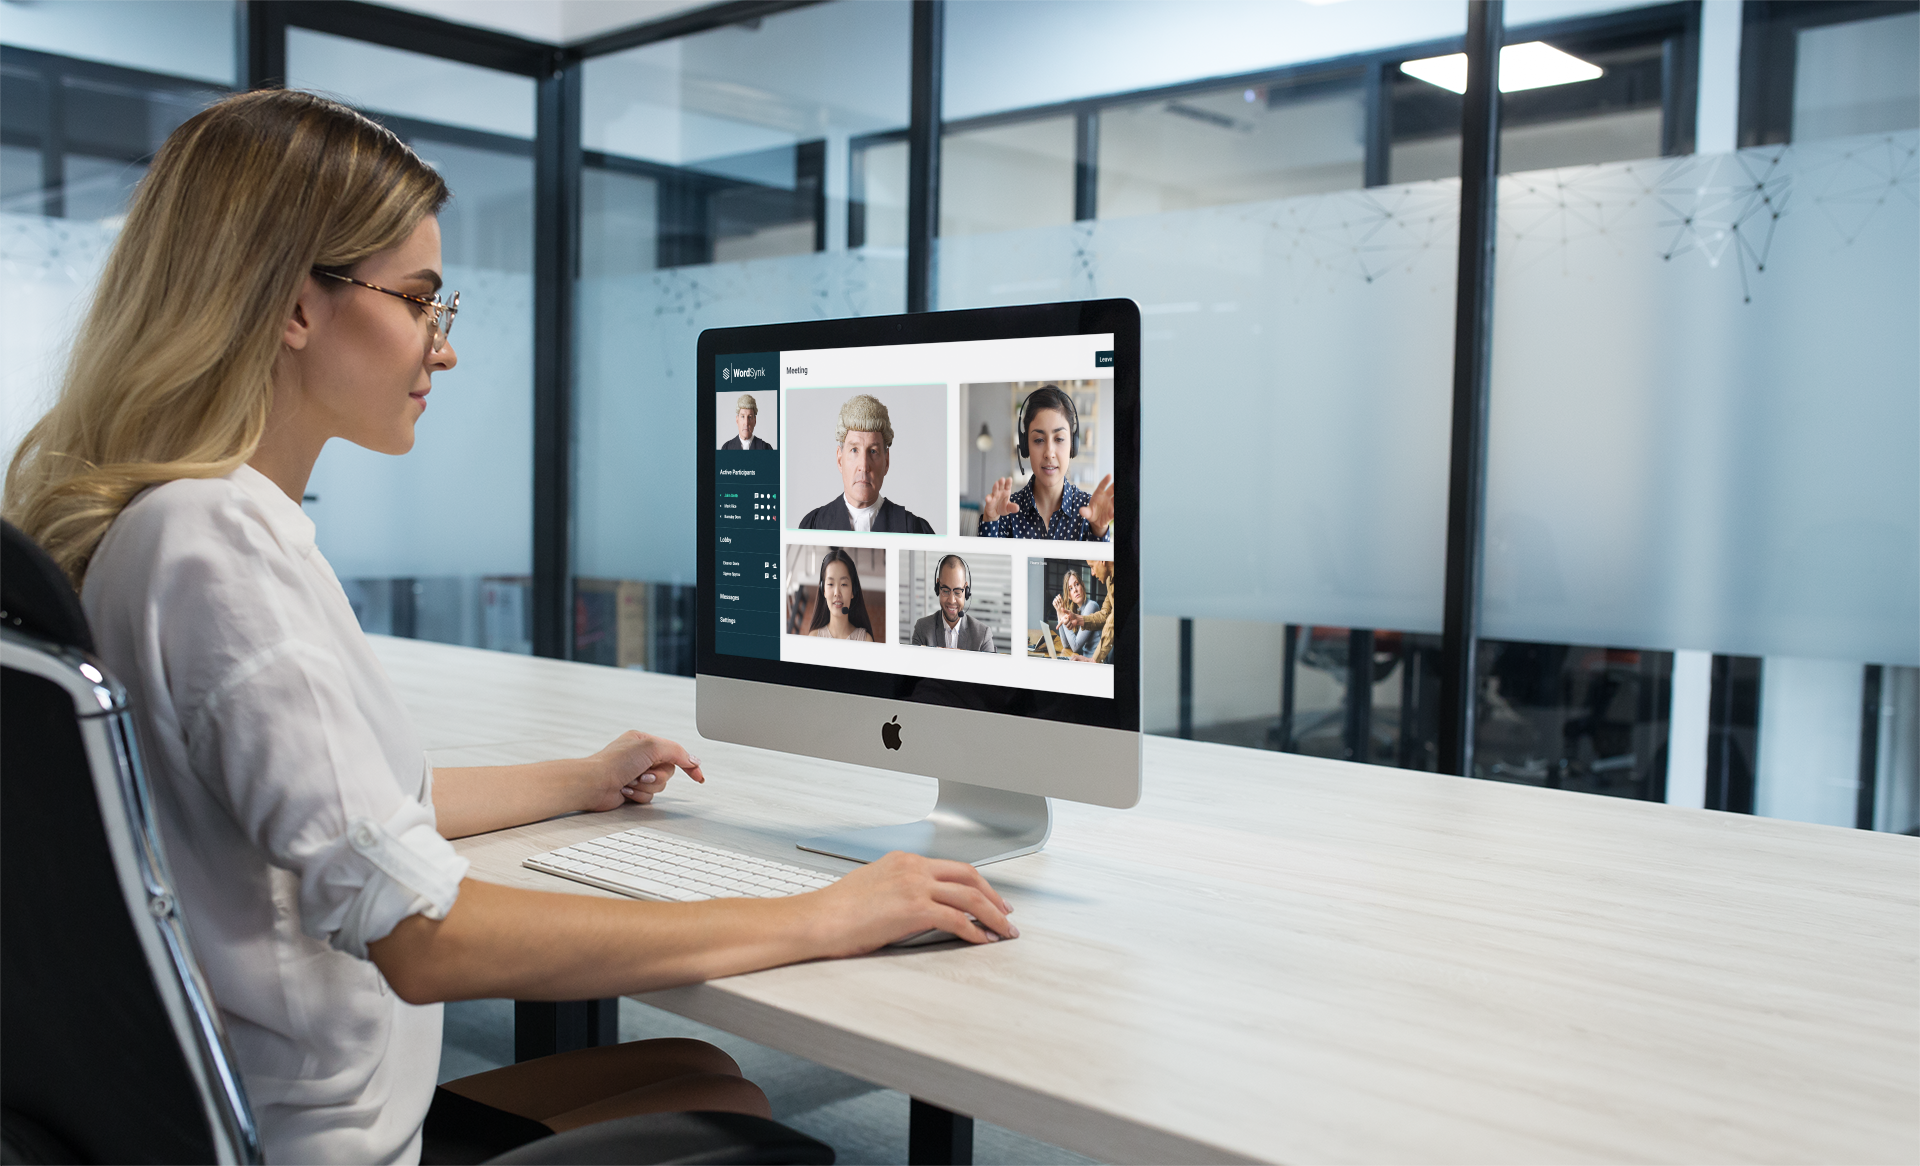 blonde-woman-using-an-imac-mockup-at-the-office-a20969